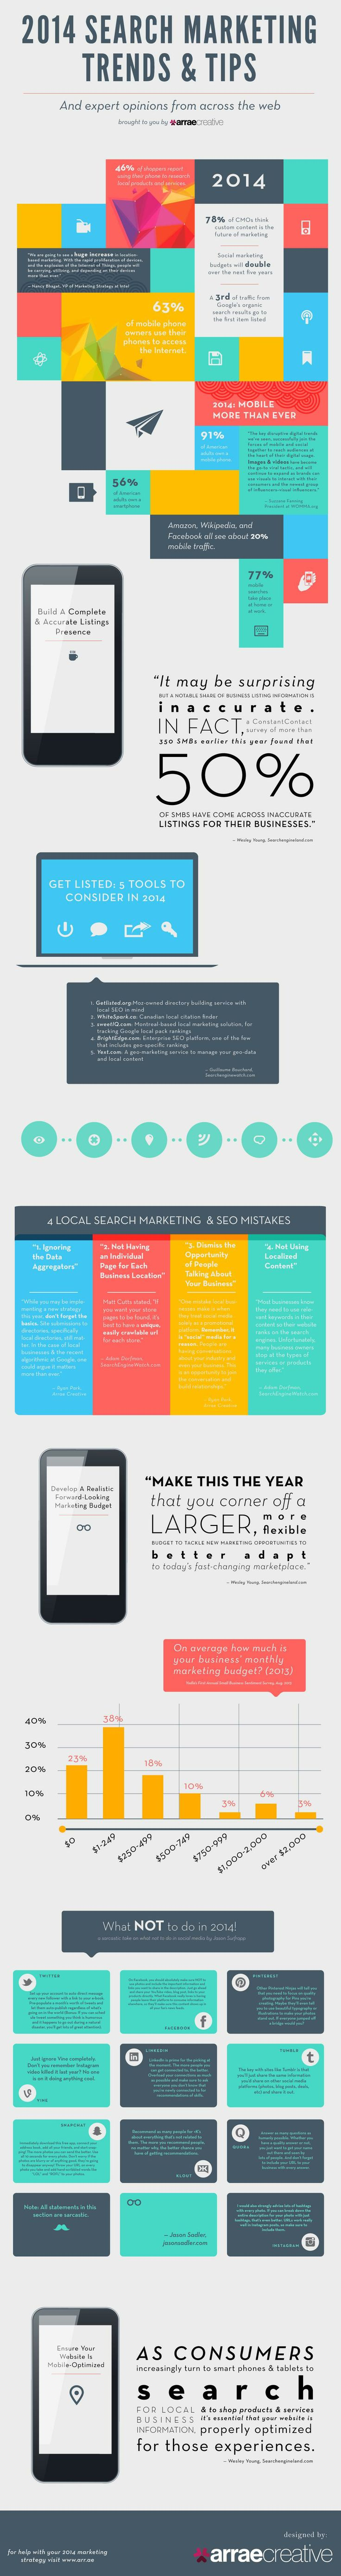 2014 trends in social and search marketing